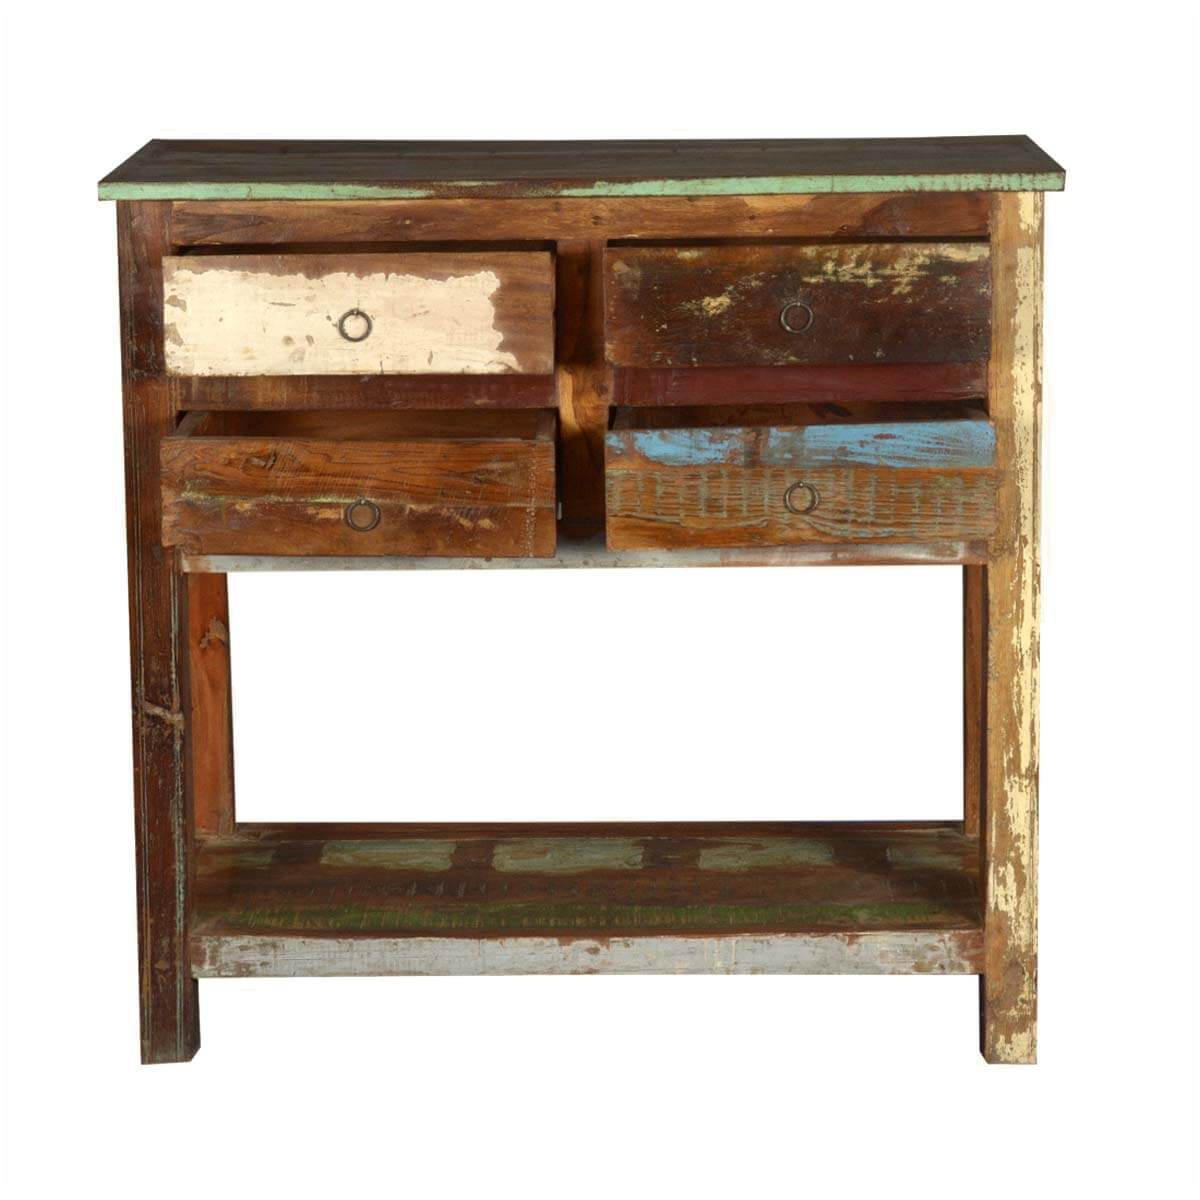 Tier reclaimed wood console table with drawers